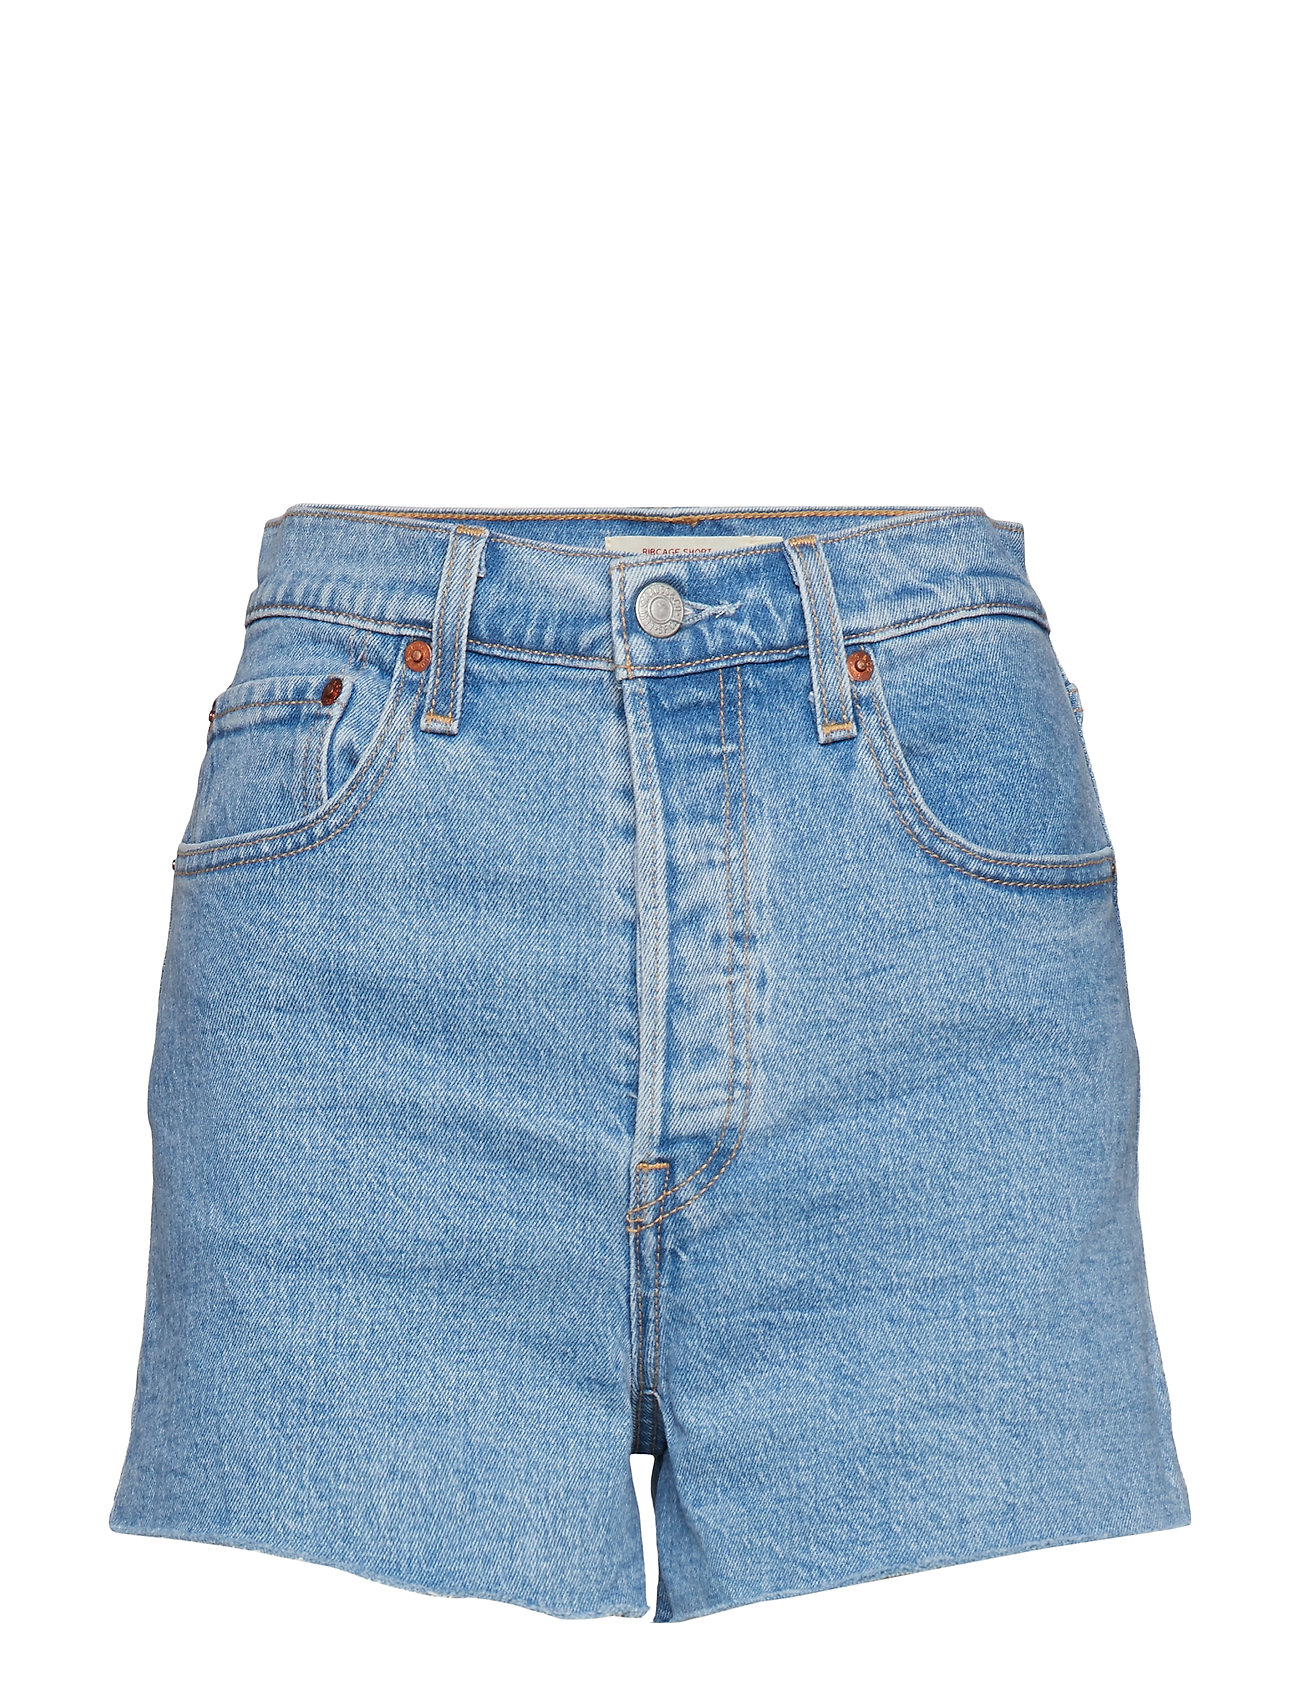 LEVI´S Women RIBCAGE SHORT TANGO STONEWASH - LIGHT INDIGO - FLAT FINIS